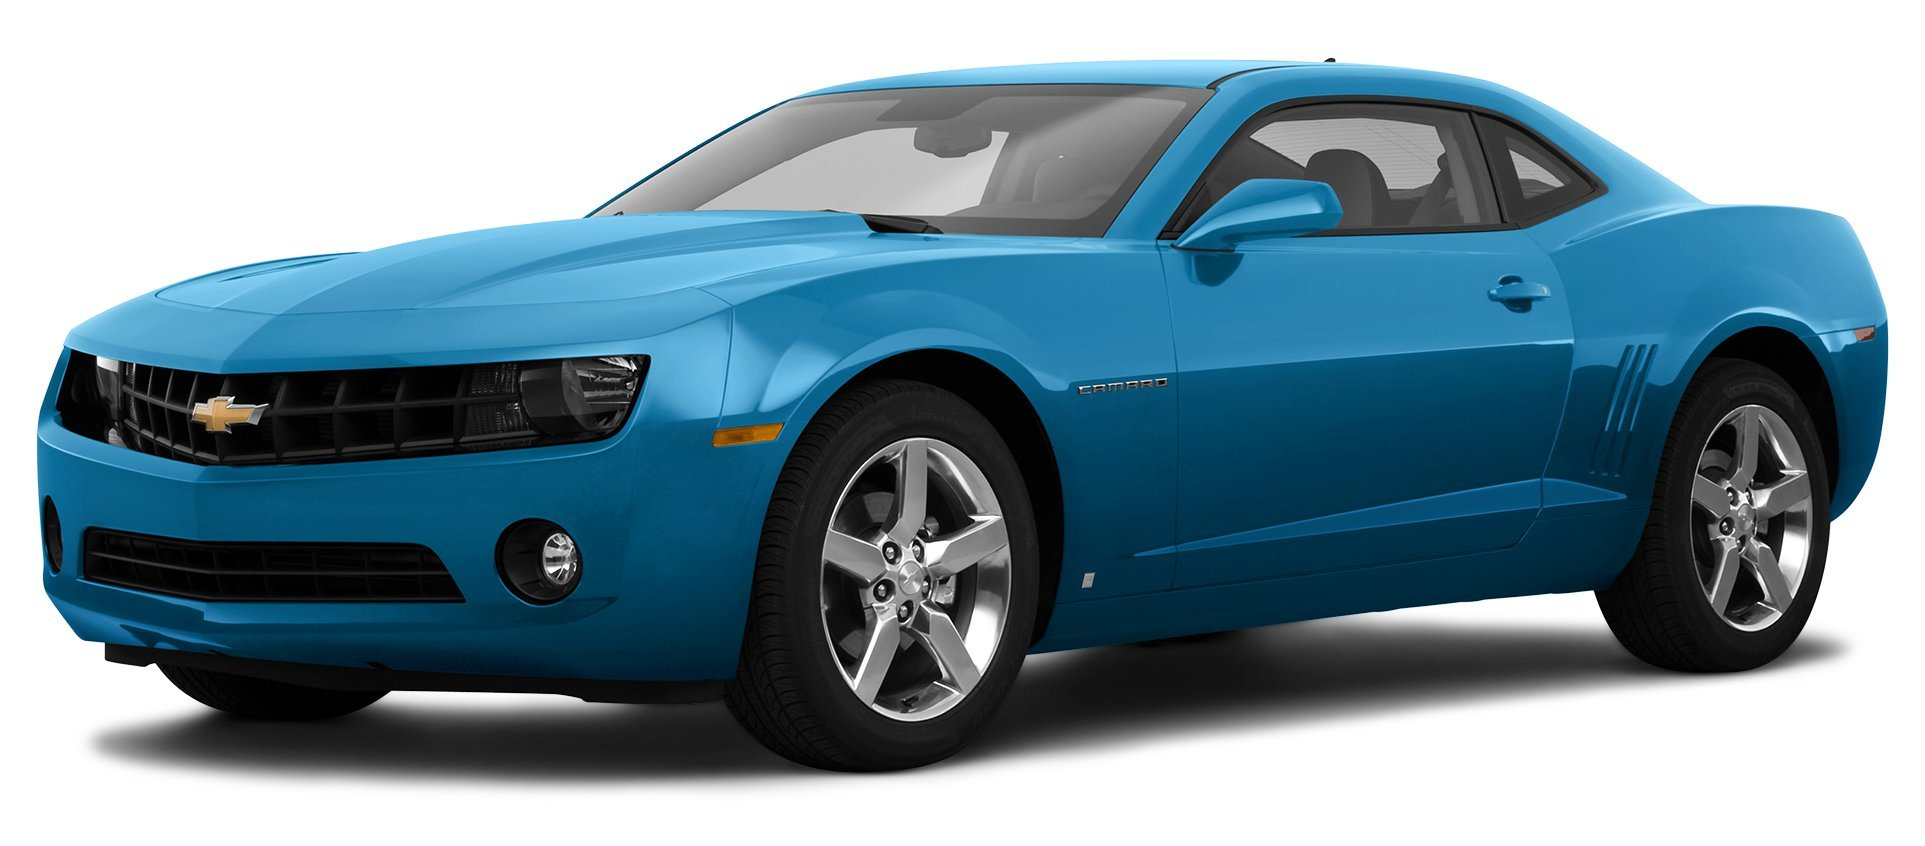 2010 chevrolet camaro reviews images and. Black Bedroom Furniture Sets. Home Design Ideas